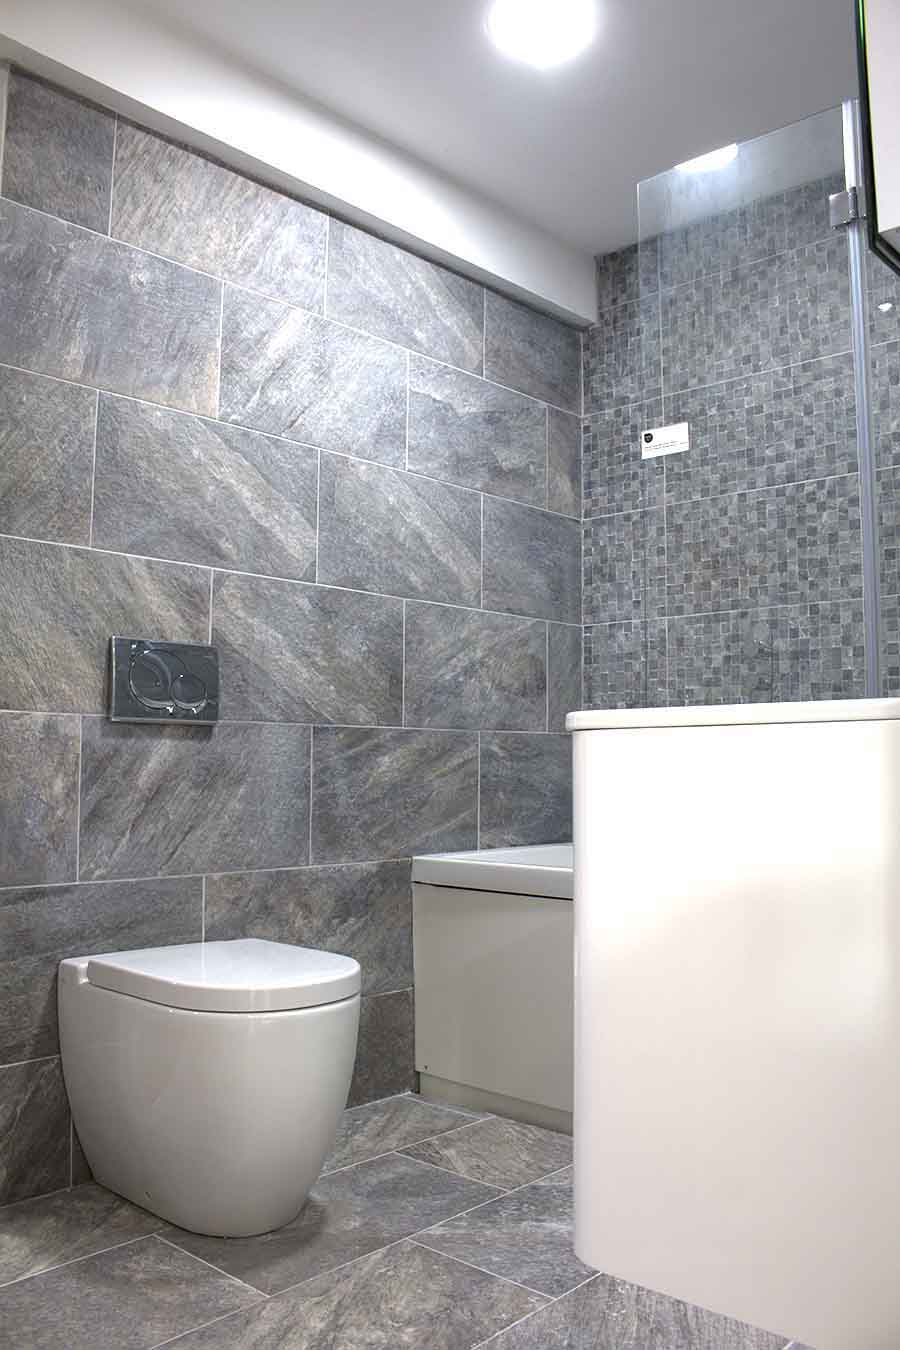 Creative Bathroom Tiles We Stock Luxury Range Of Bathroom Tiles